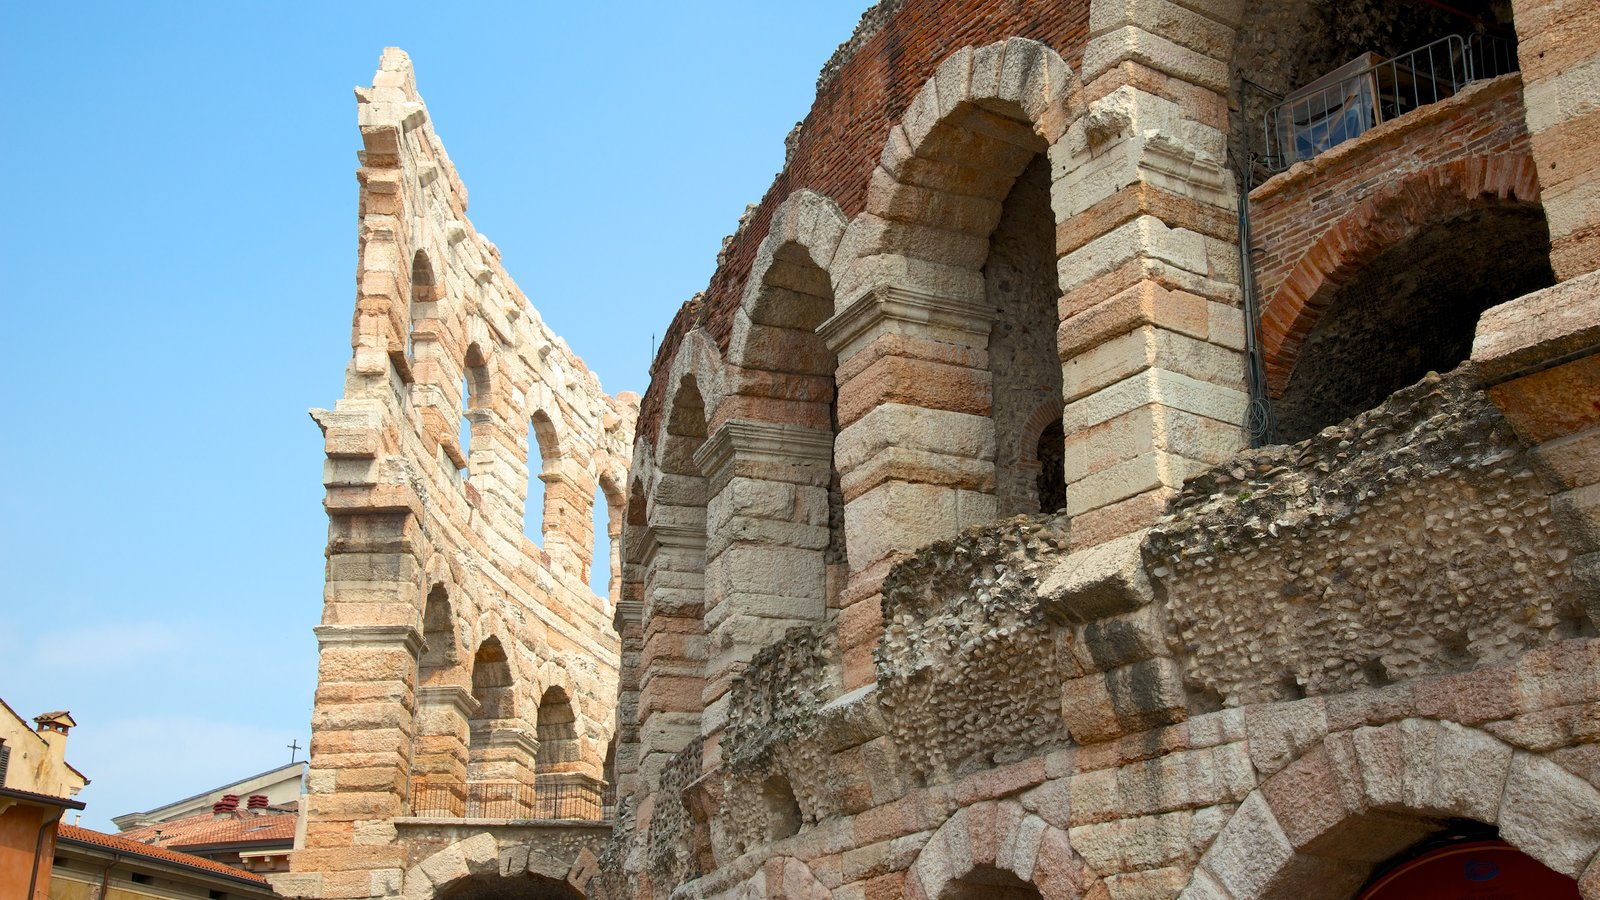 Arena di Verona showing building ruins and heritage elements